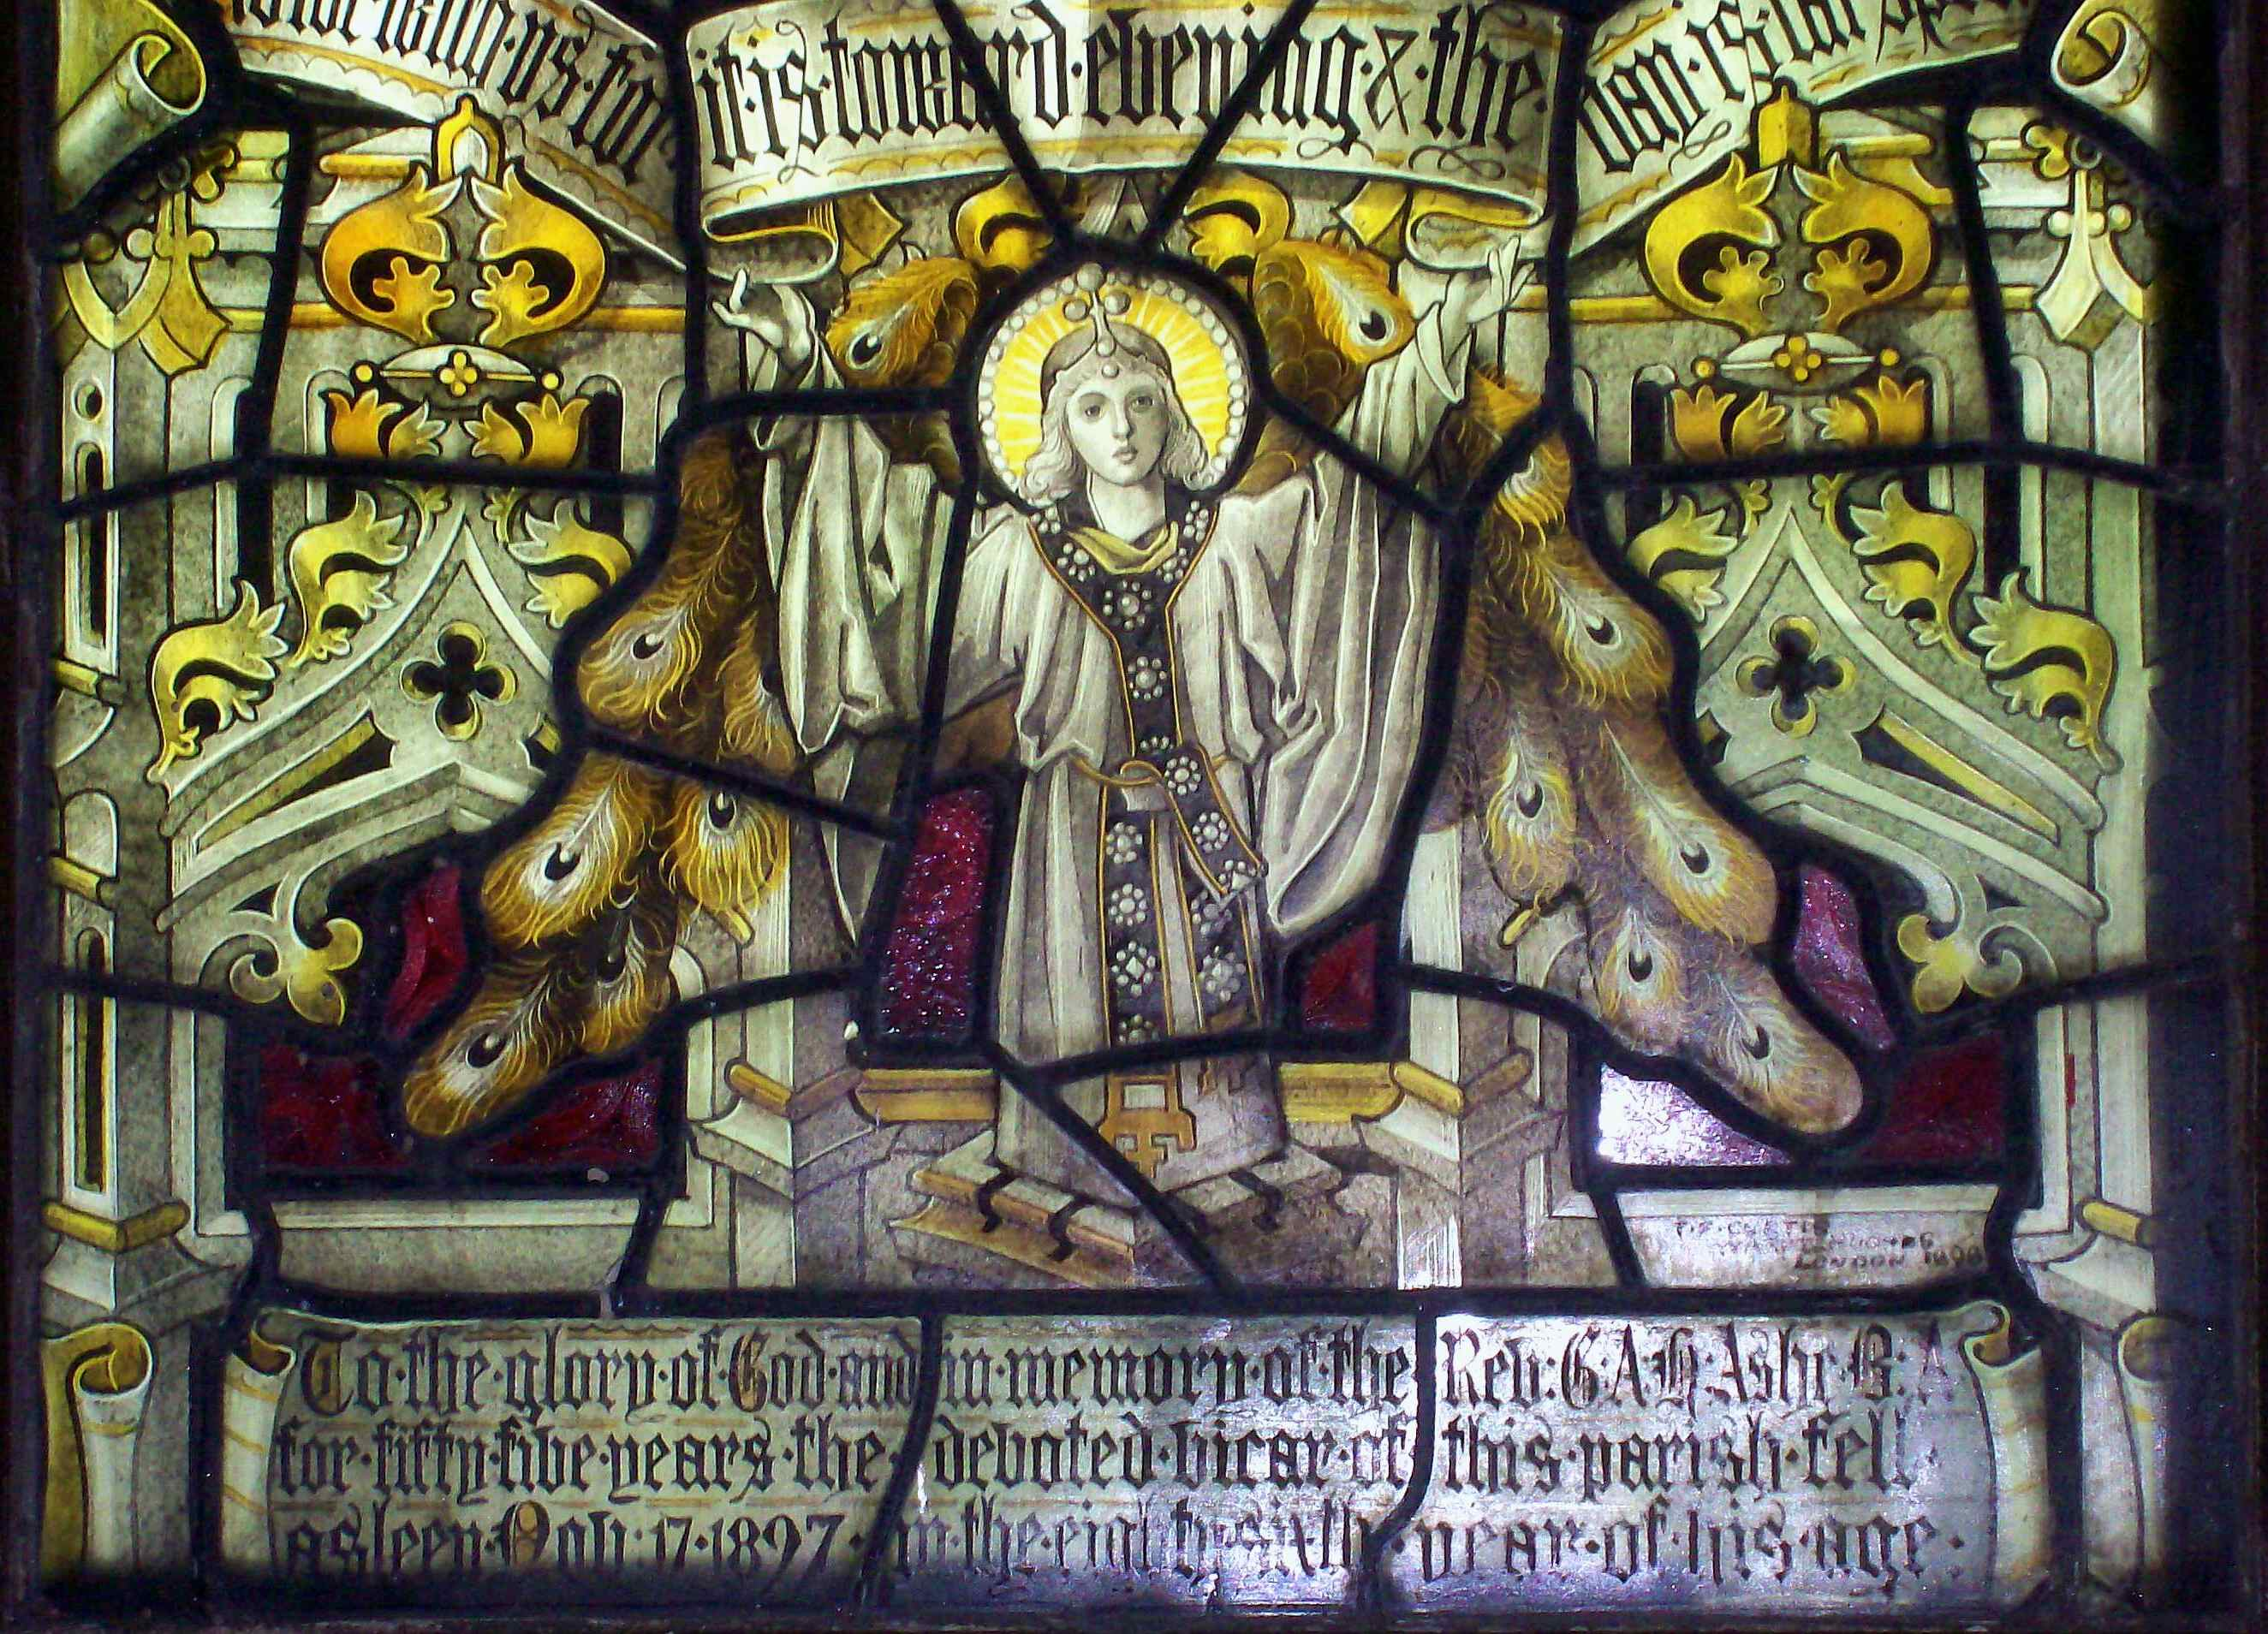 GAH Ashe - Writing on stained glass window